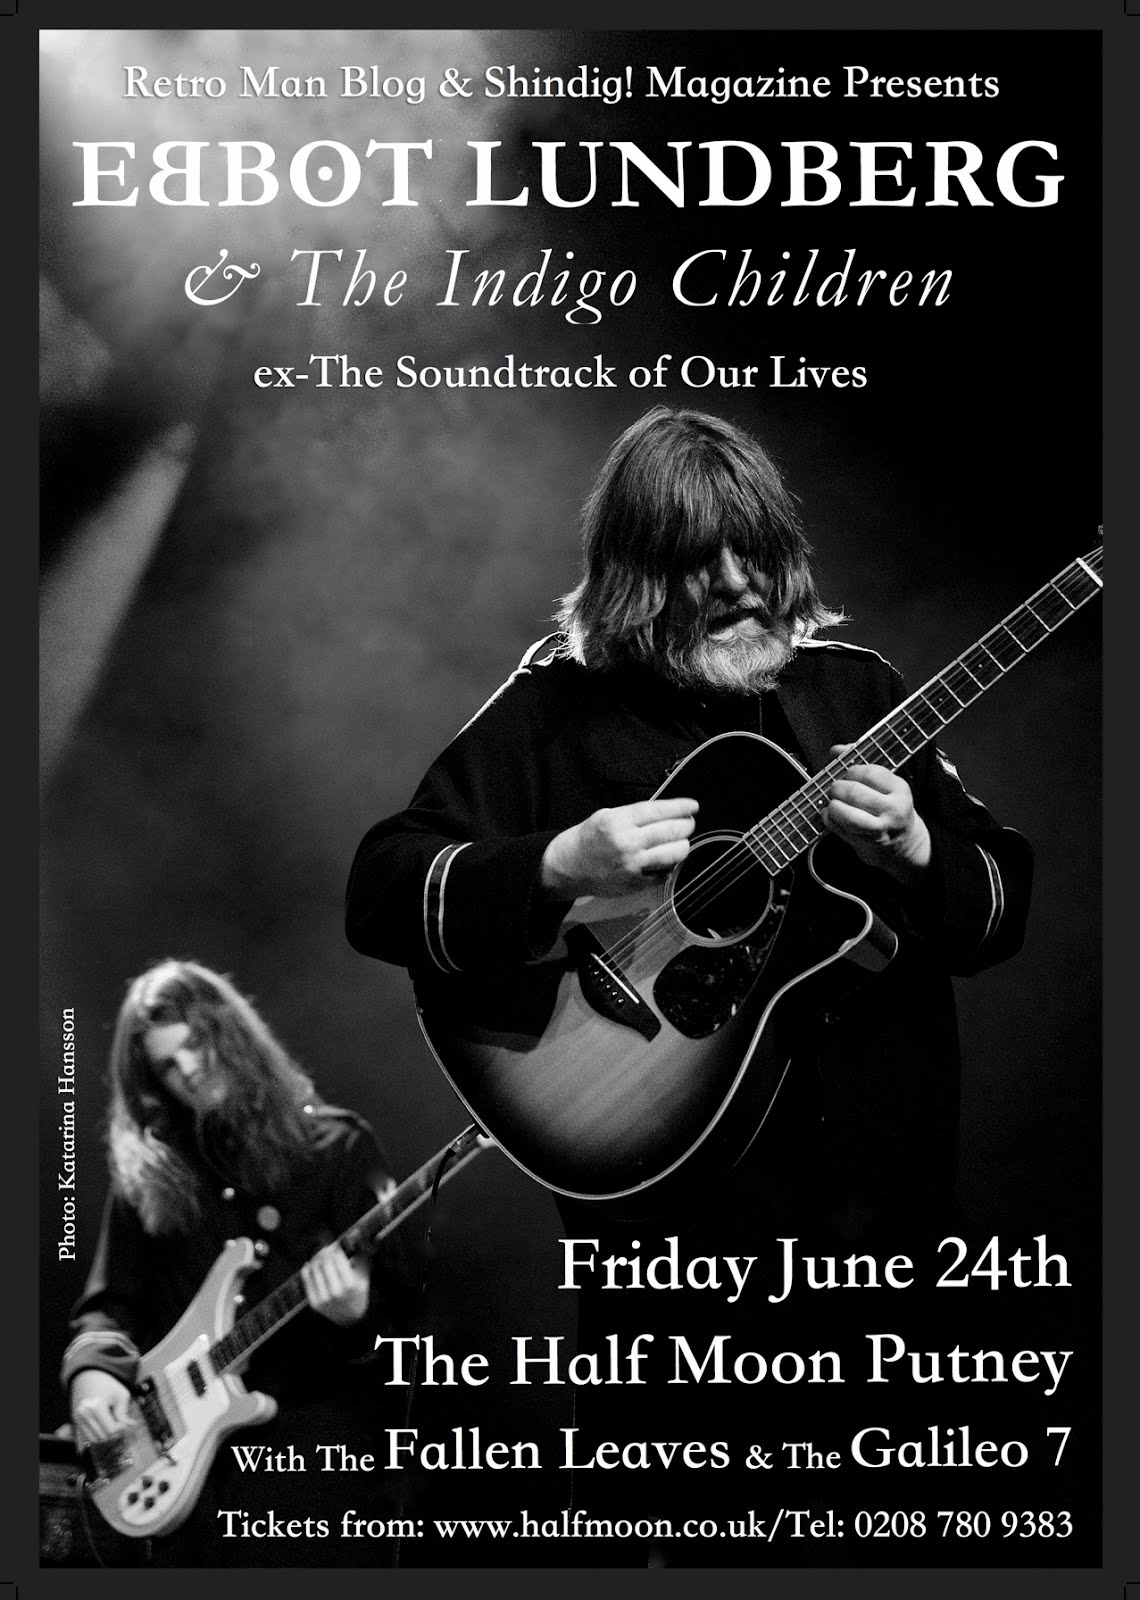 Ebbot Lundberg & The Indigo Children (ex-The Soundtrack of Our Lives) Half Moon Putney June 24th